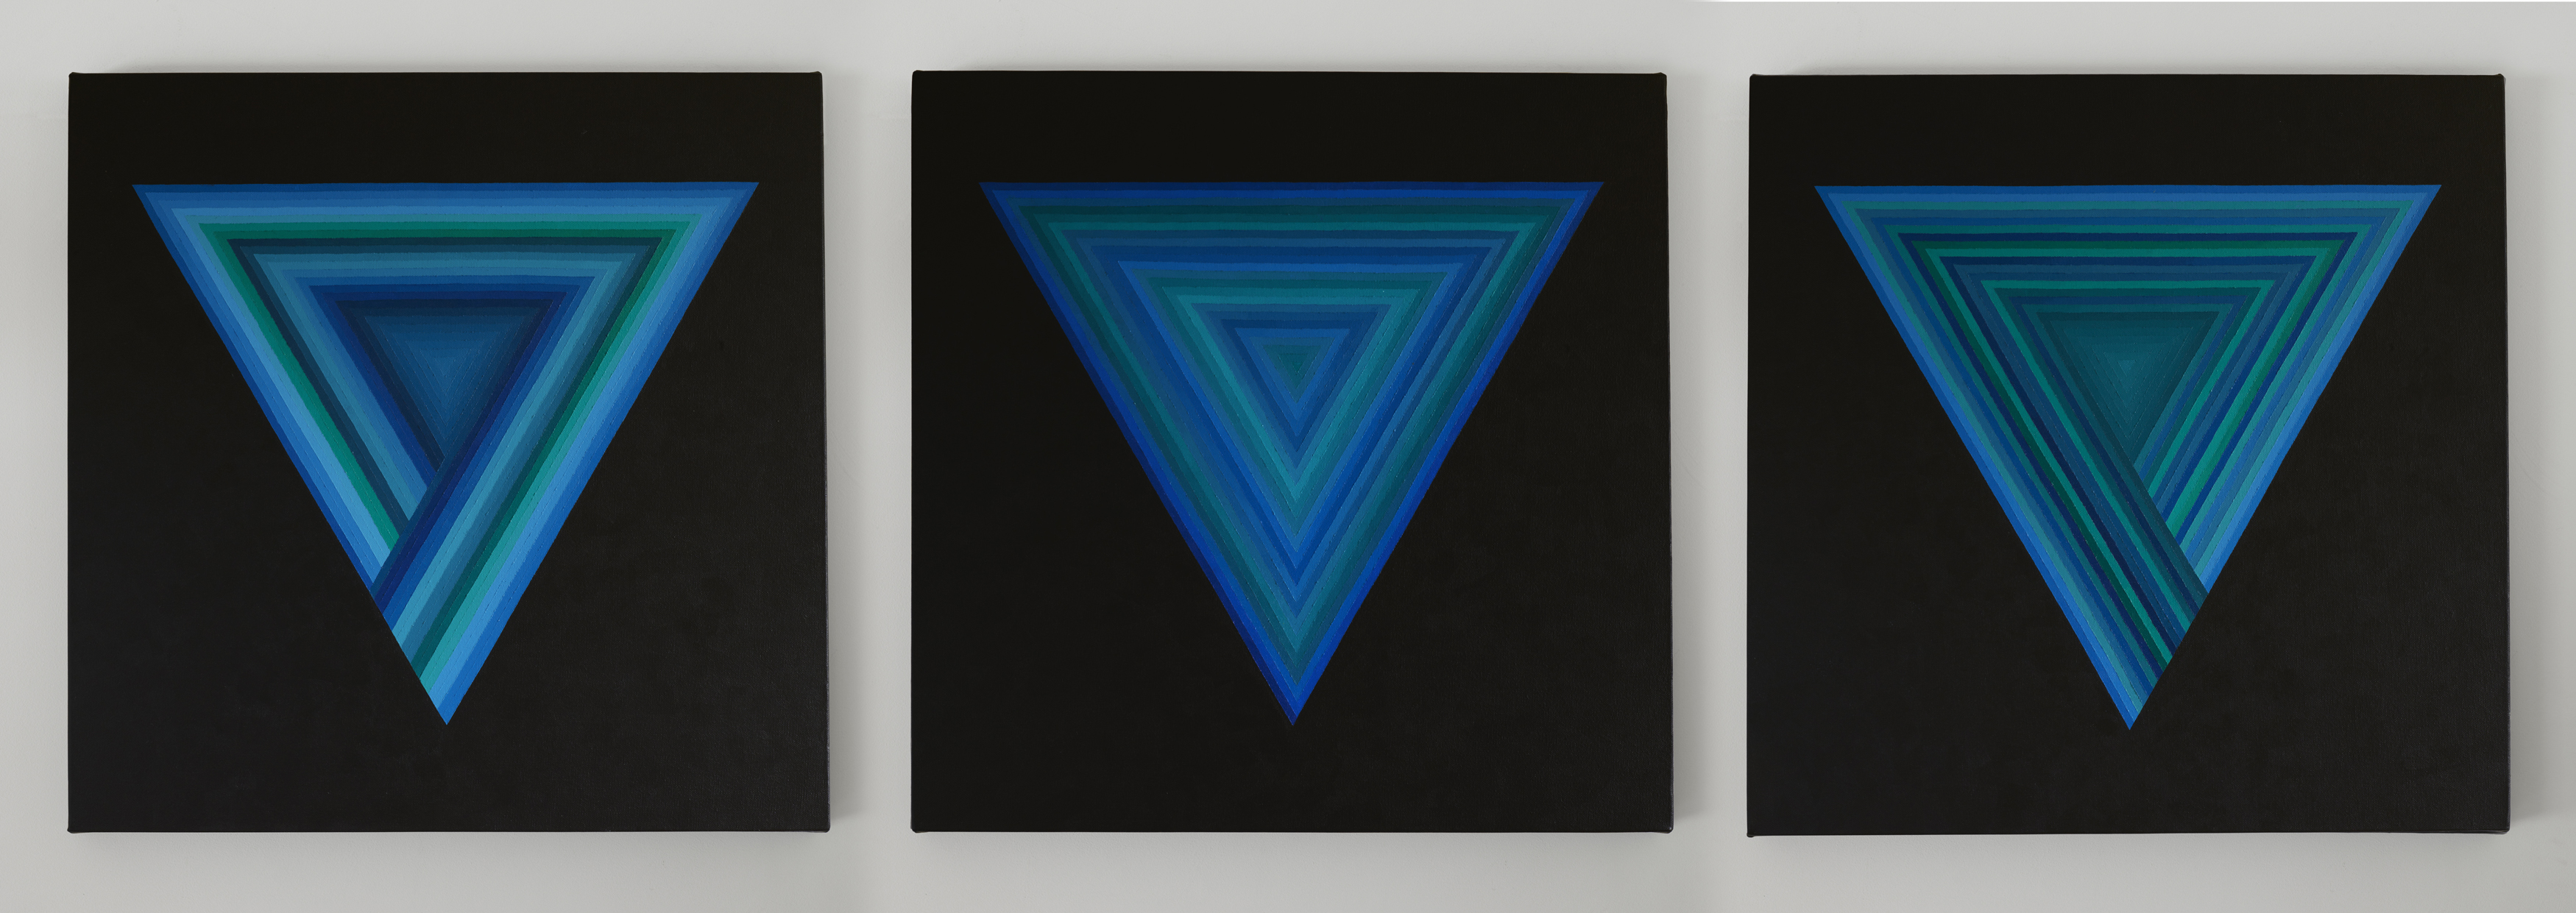 "Acrylic on Canvas 60cm x 60cm ""Thought Experiments ABC - The Interpretations of Quantum Mechanics'"